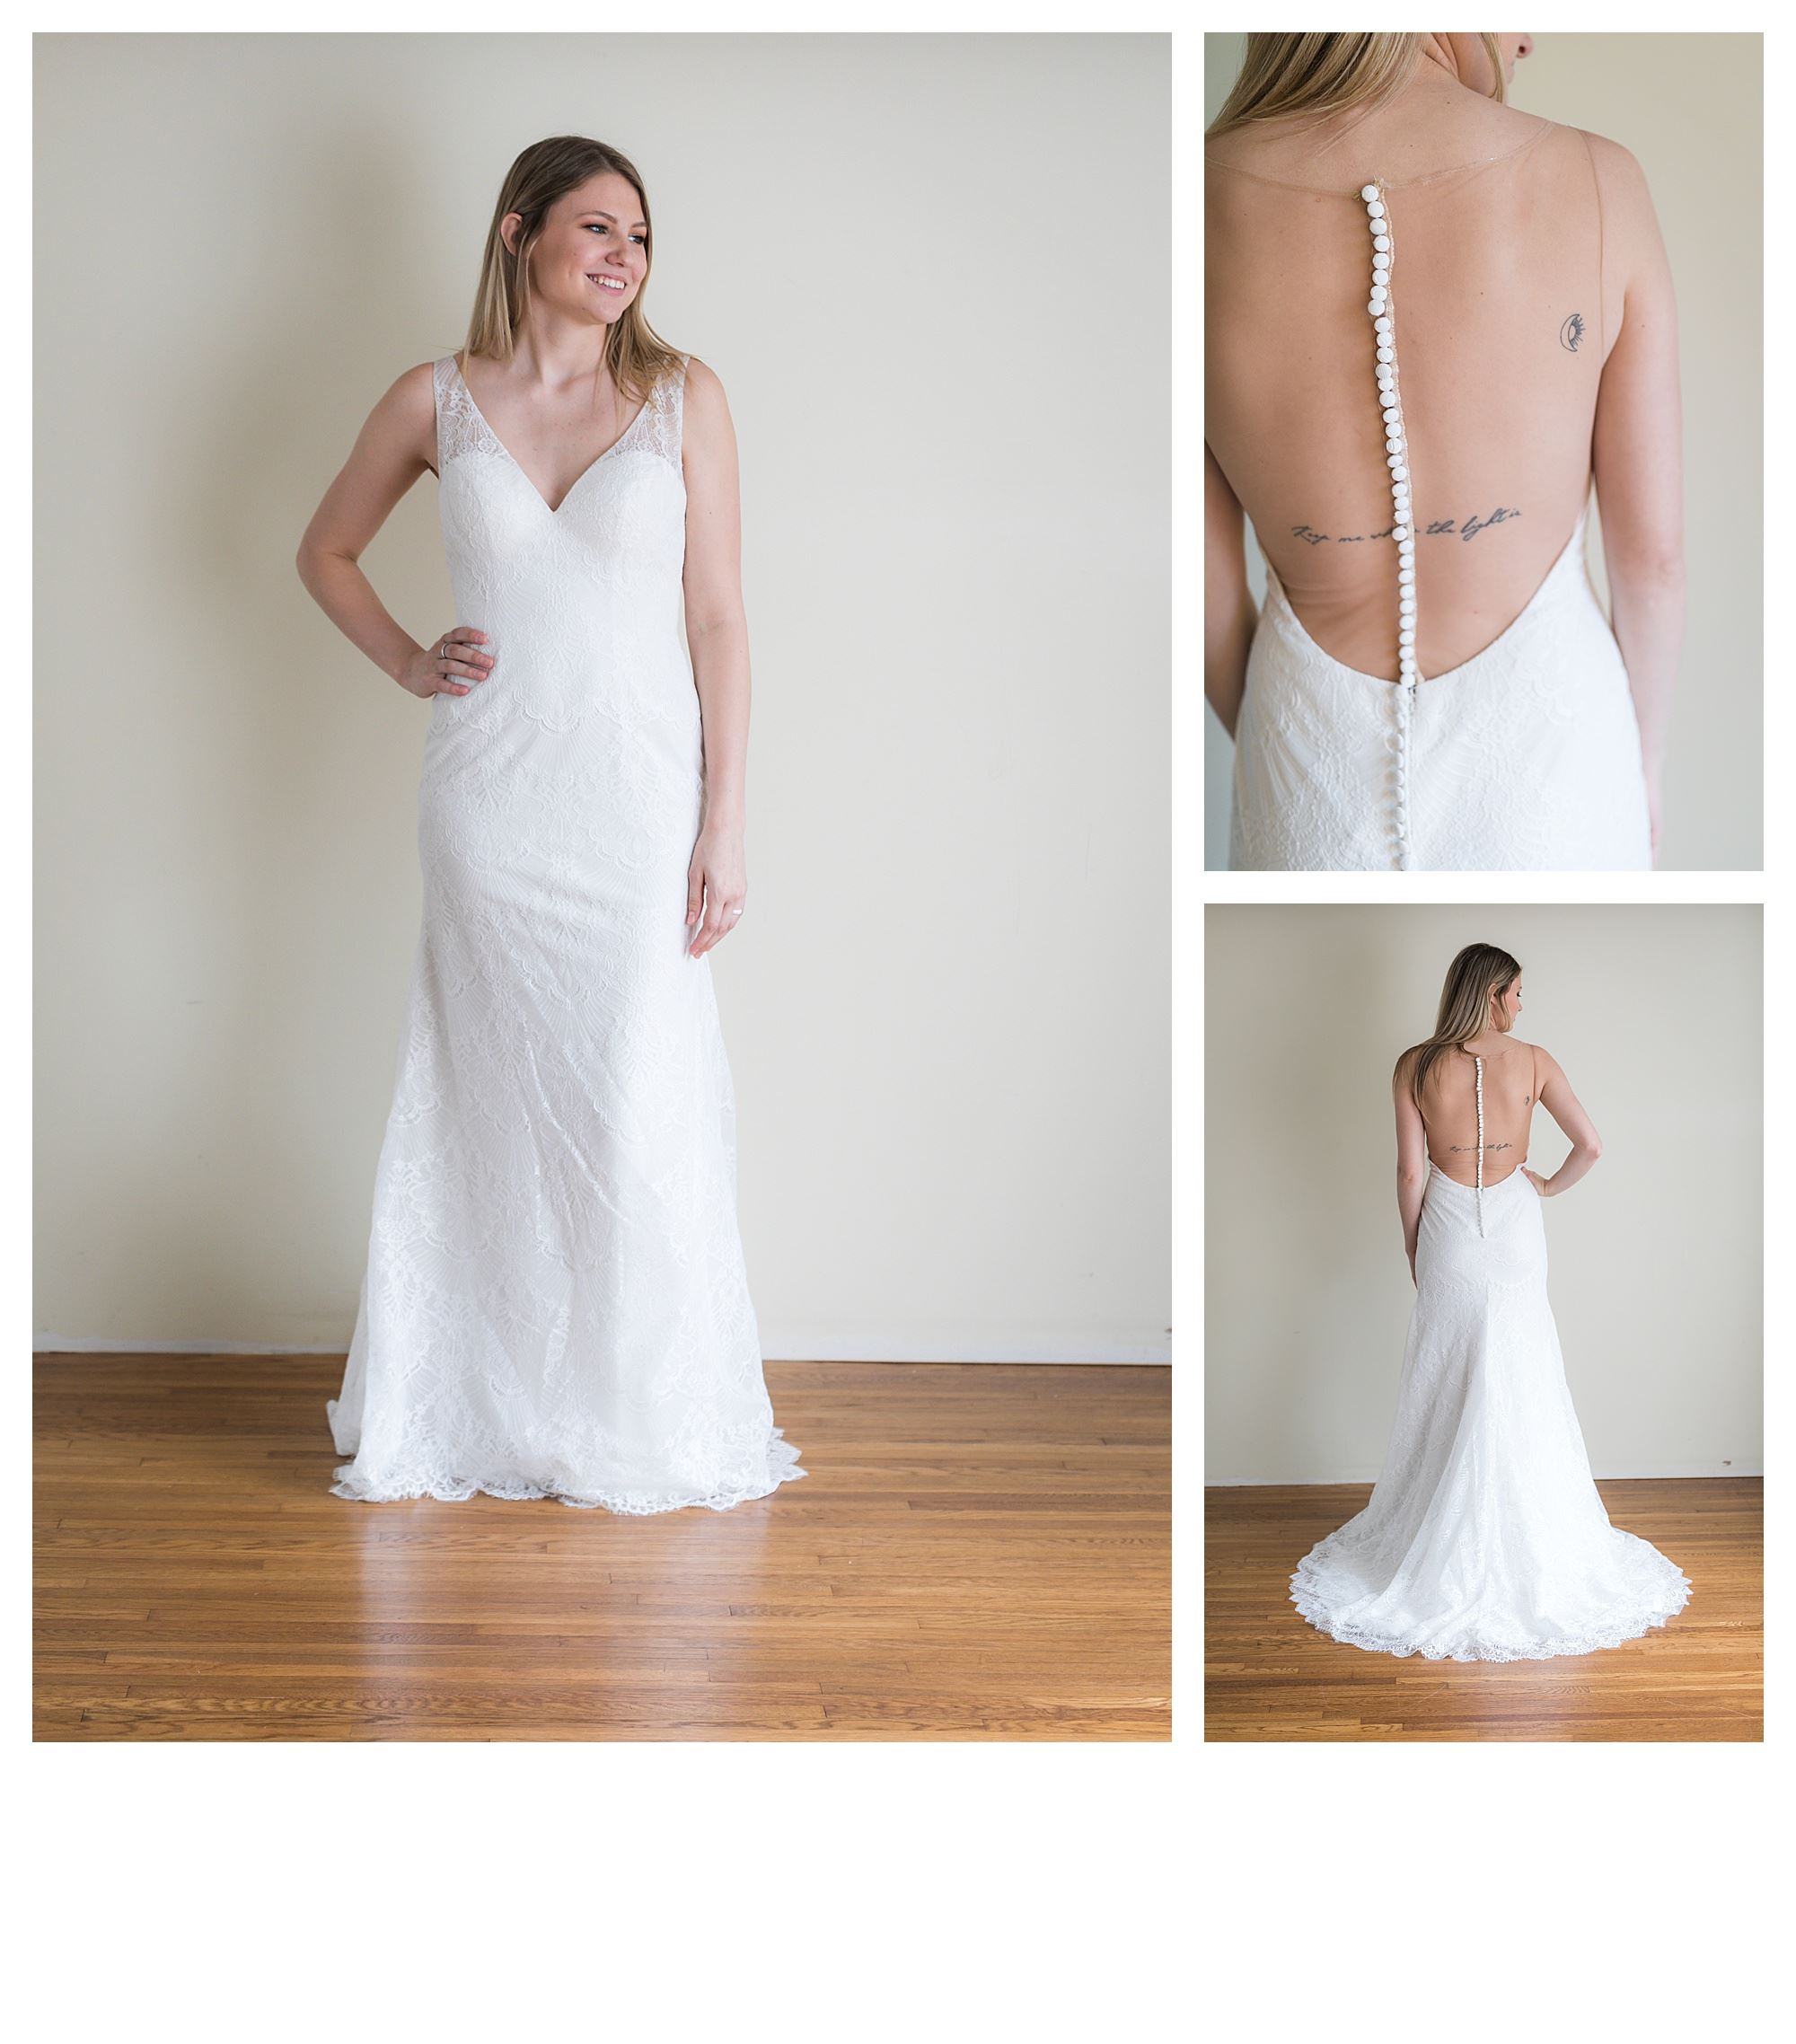 Sadira - Size 10 - Sand/Ivory/Nude - Originally priced $1399 - Sample box price $999